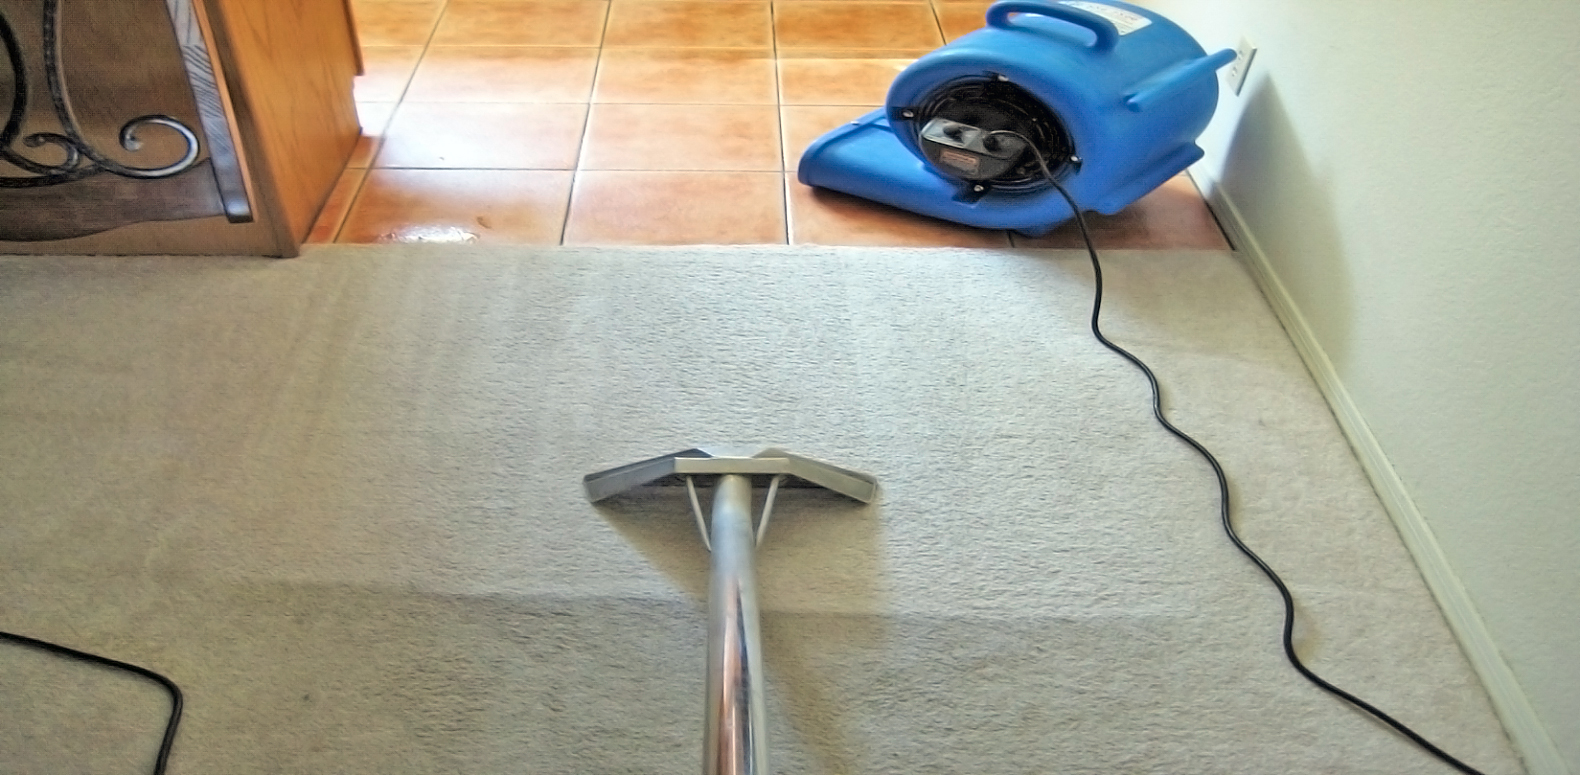 Carpet Cleaning Kiar